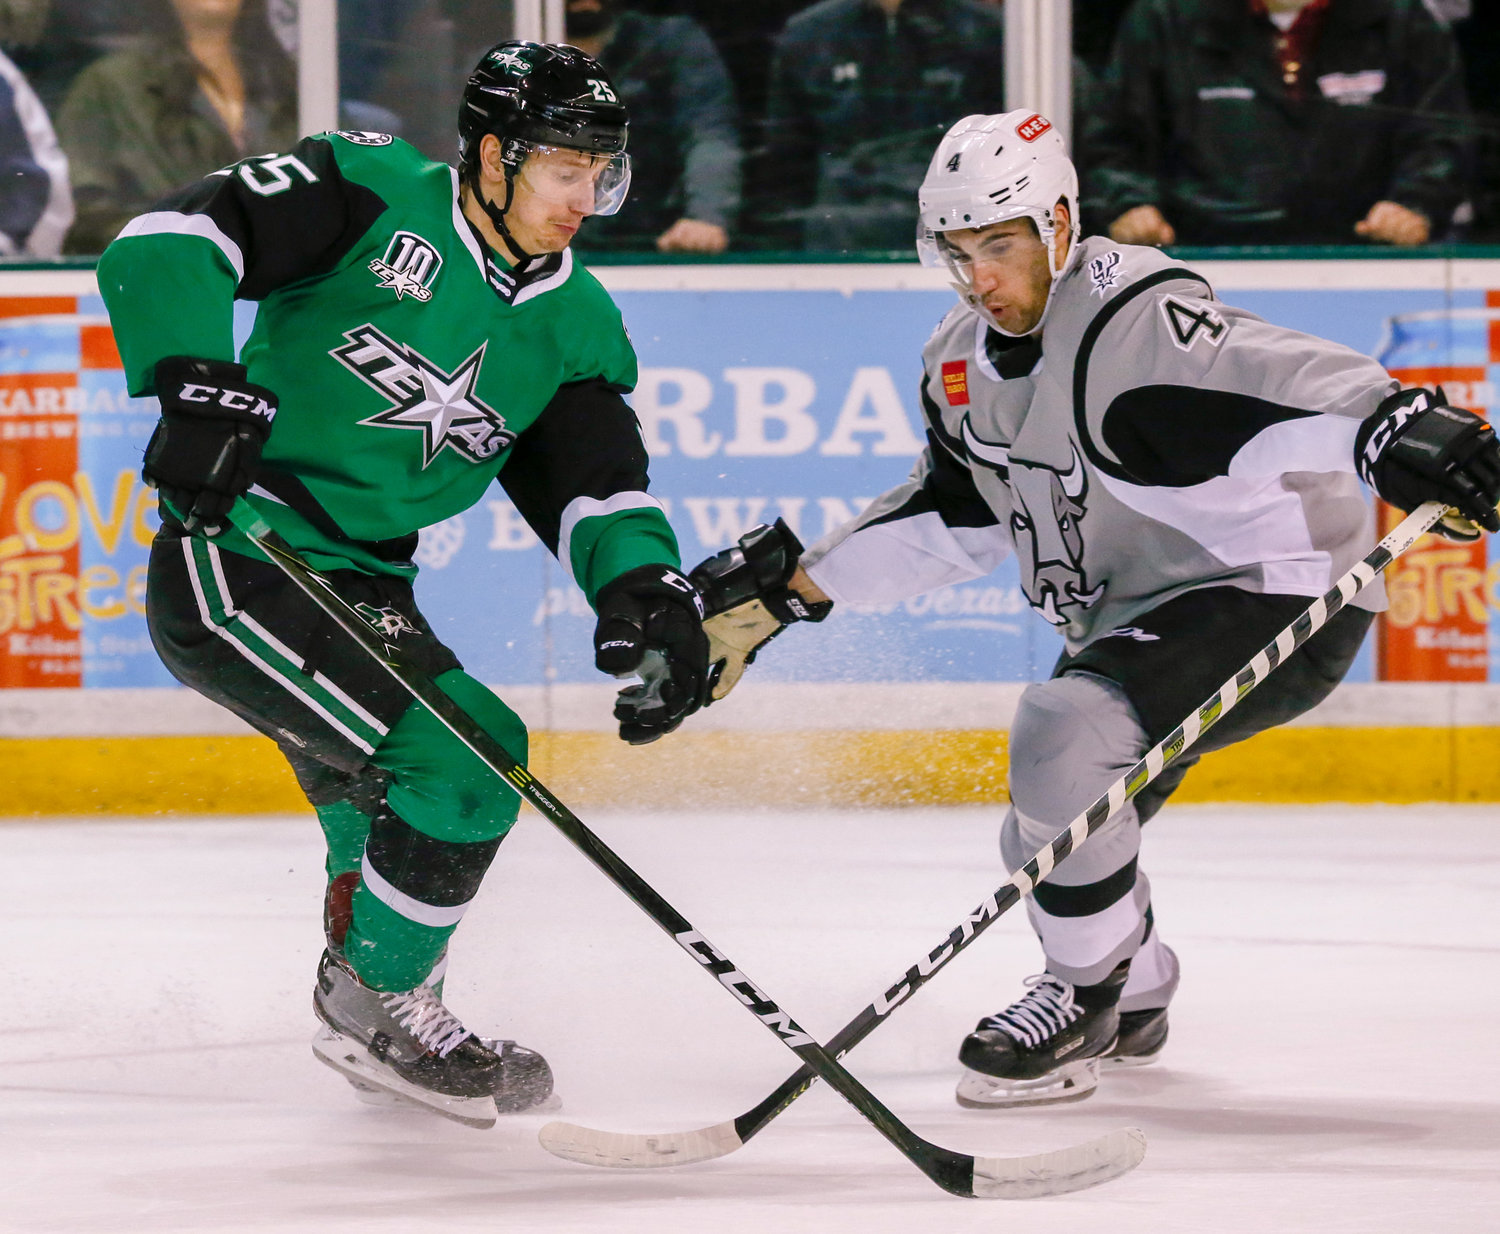 Denis Gurianov, left, and the Texas Stars lost to the San Antonio Rampage 3-1 on Saturday night in the regular season. The Stars missed the playoffs for the third time in franchise history this season.